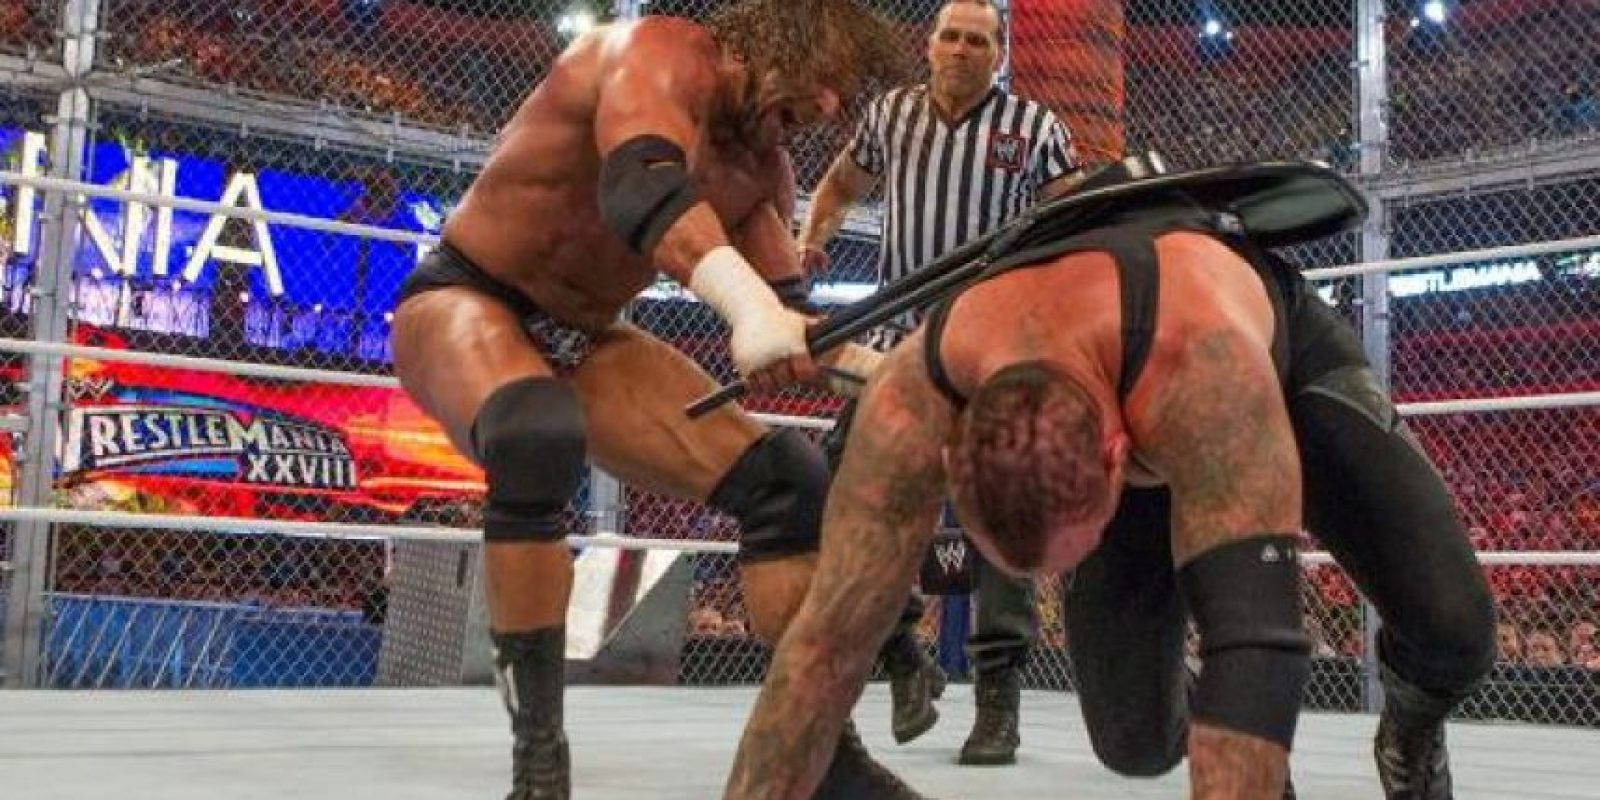 Triple H vs. Undertaker Foto: WWE